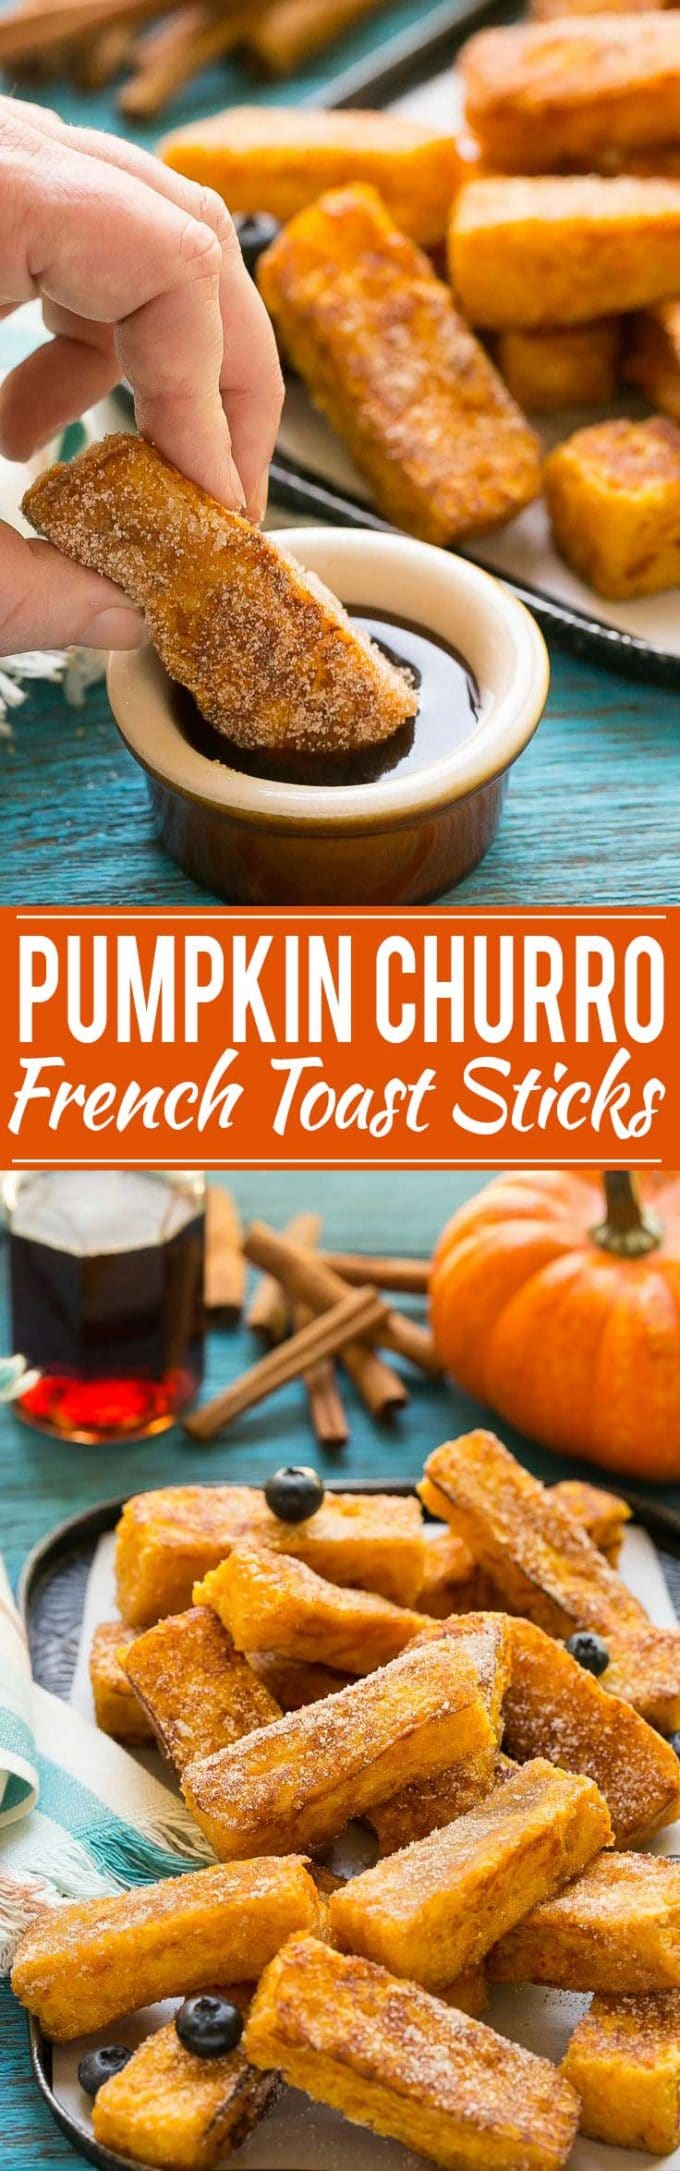 Pumpkin Churro French Toast Sticks Recipe | Pumpkin Churro French Toast Sticks | French Toast Sticks | Pumpkin French Toast Sticks